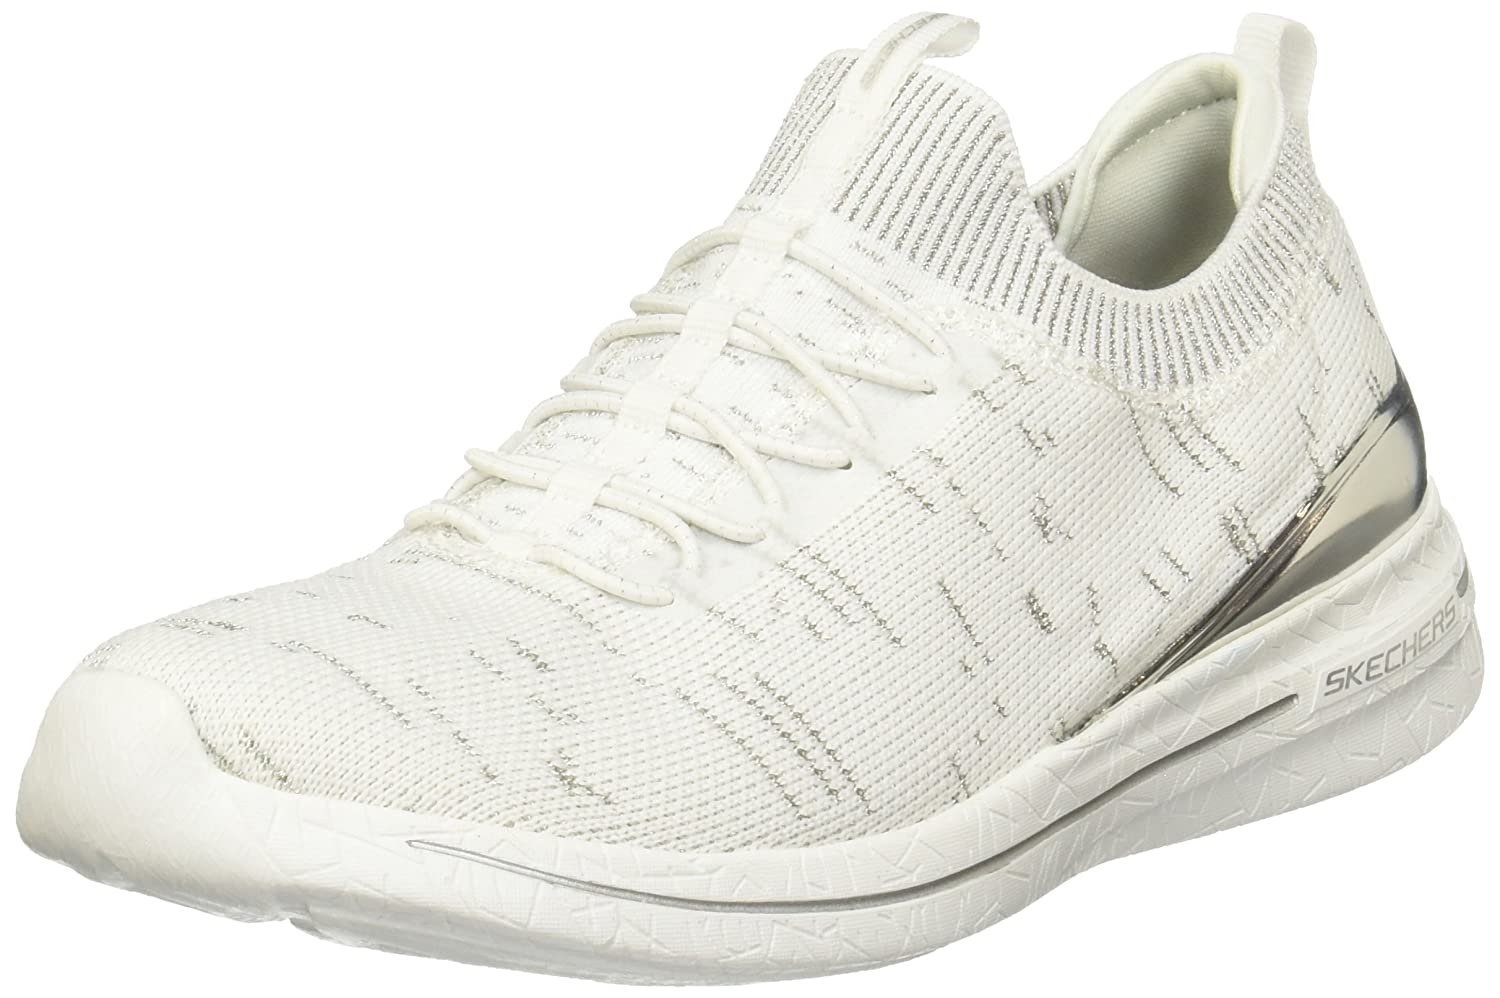 Skechers Damen Turnschuhe Burst Grand Fortune Weiß